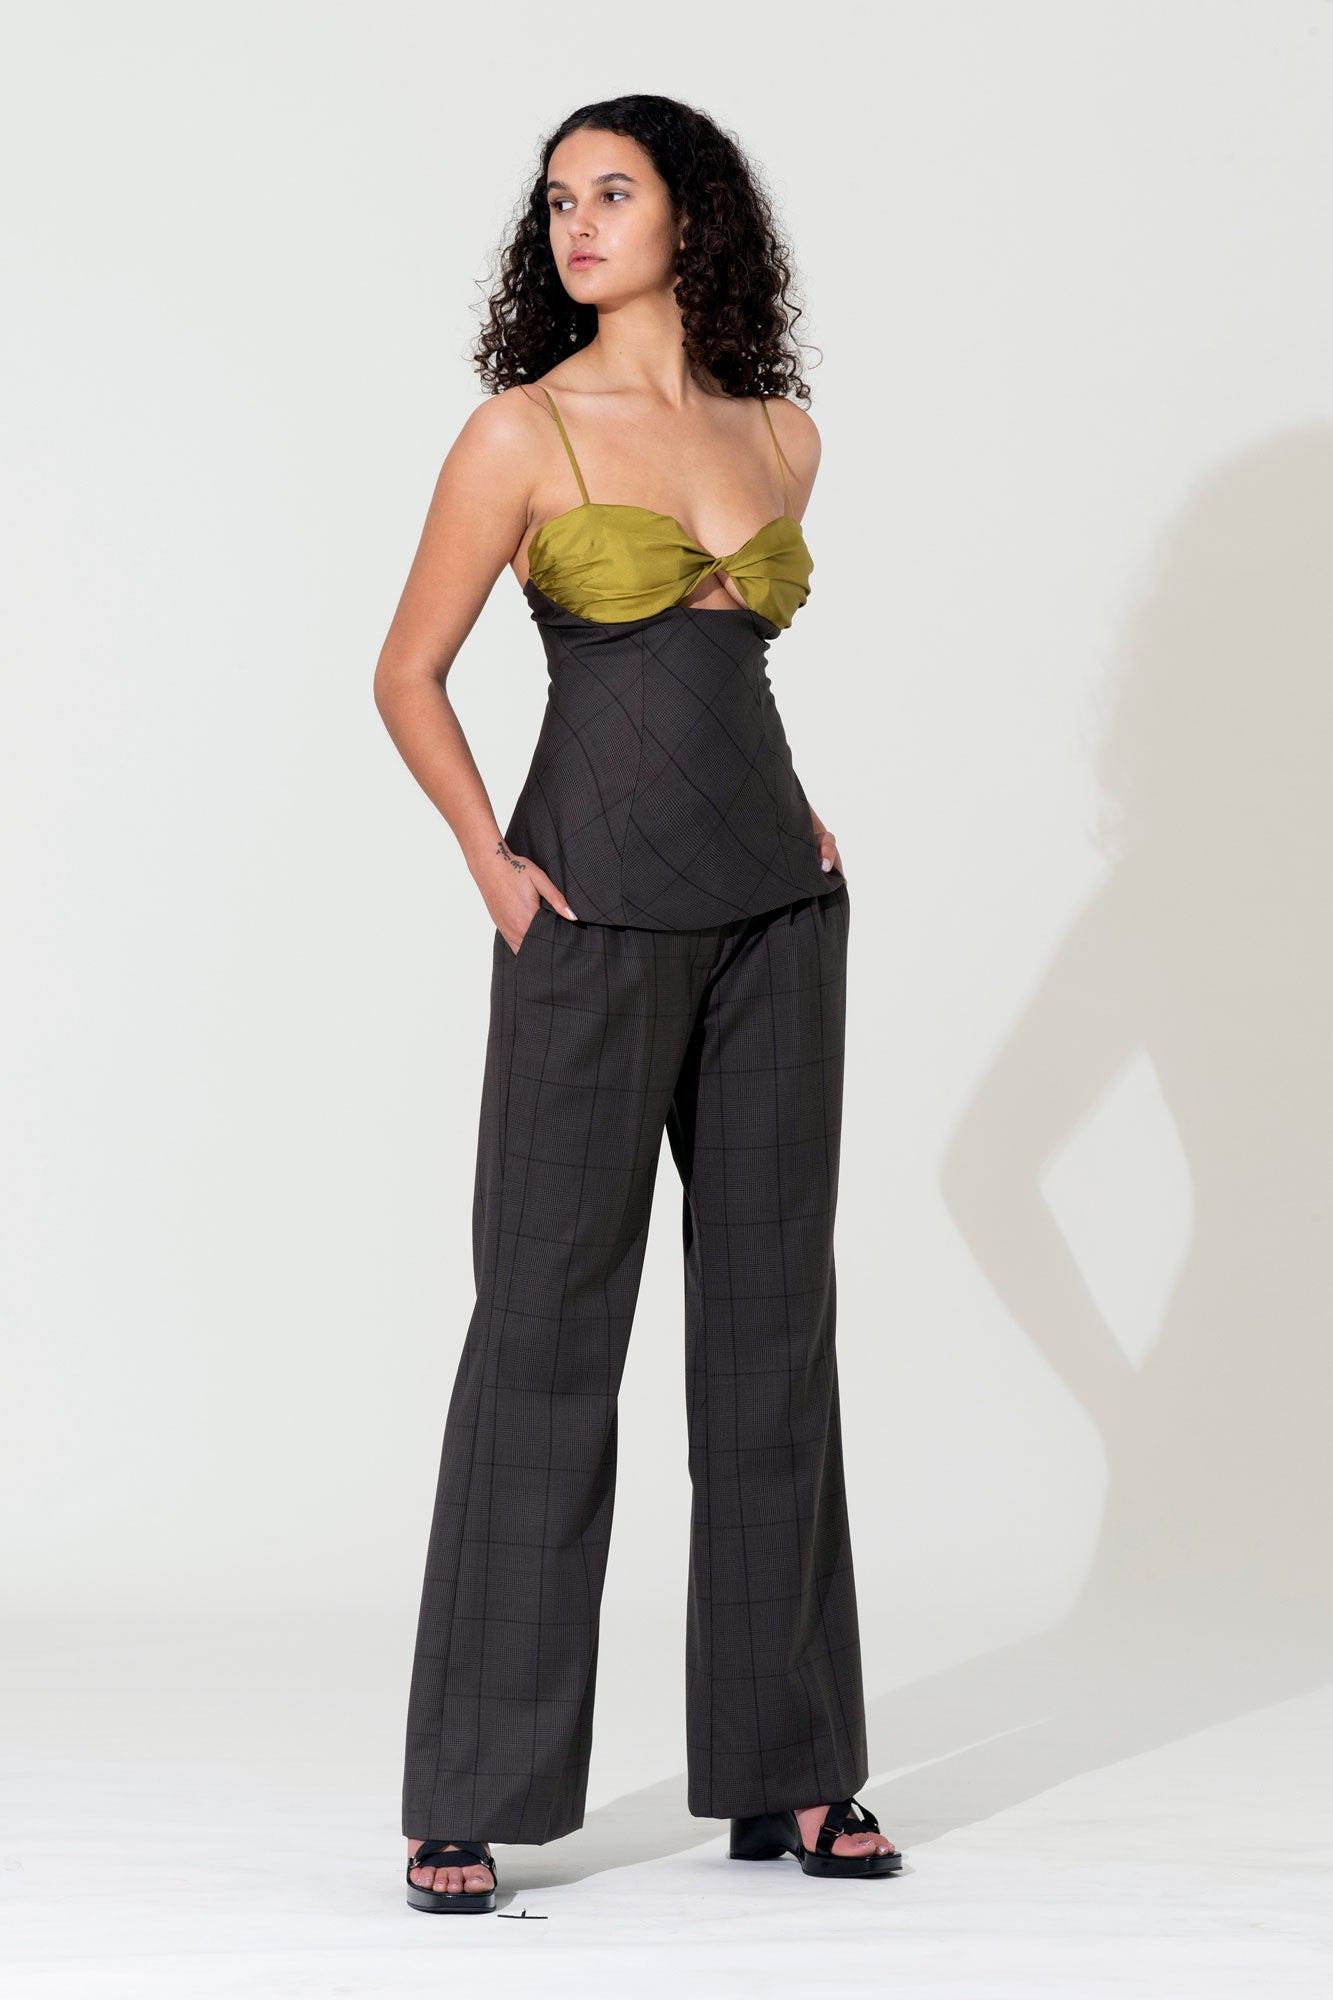 Twist Bustier Top - Khaki / Check